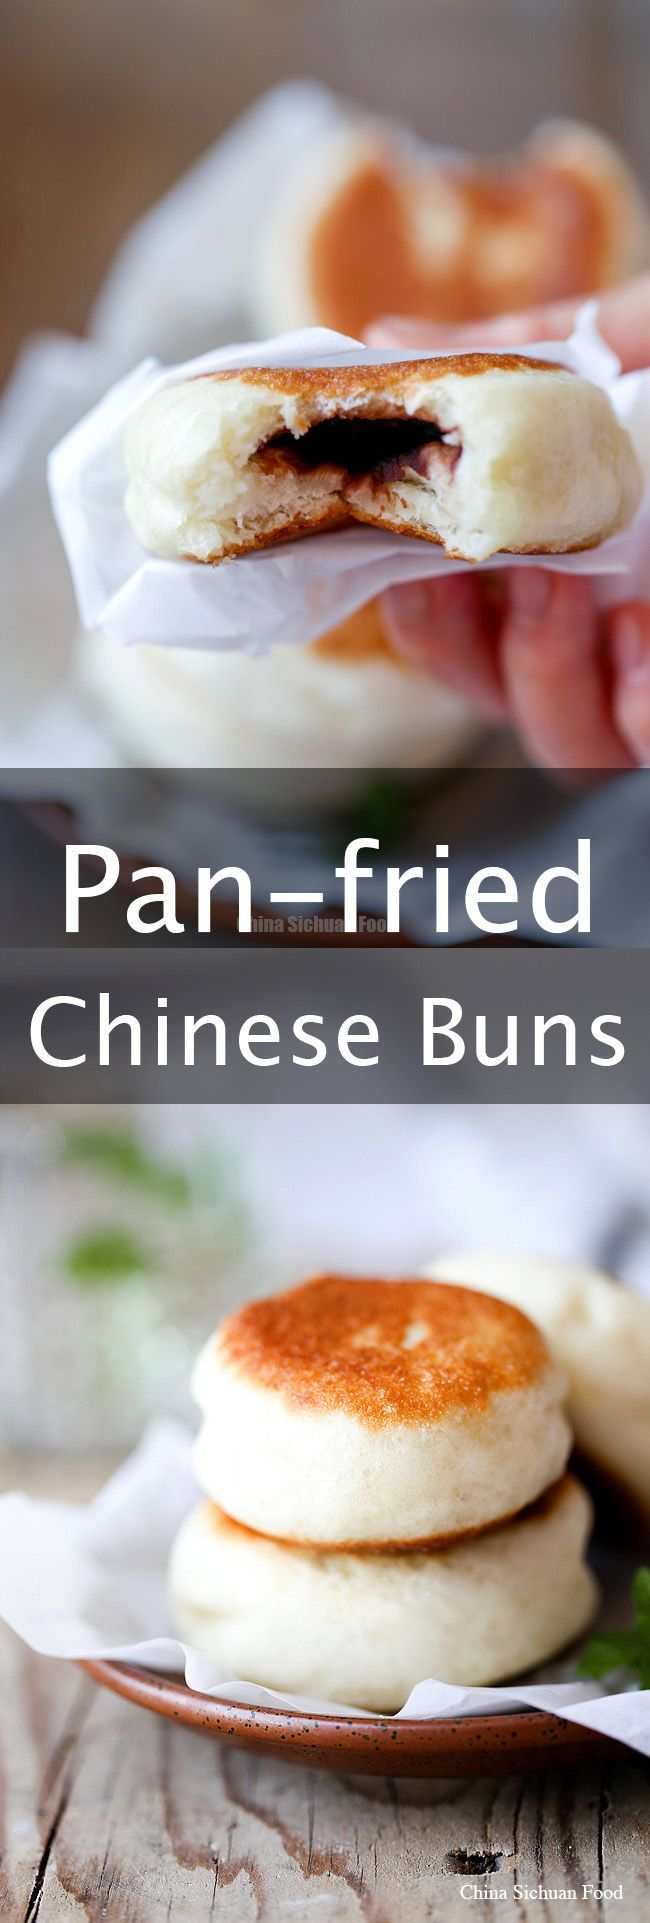 Pan fried Chinese Dou sha buns, sweet red bean paste buns